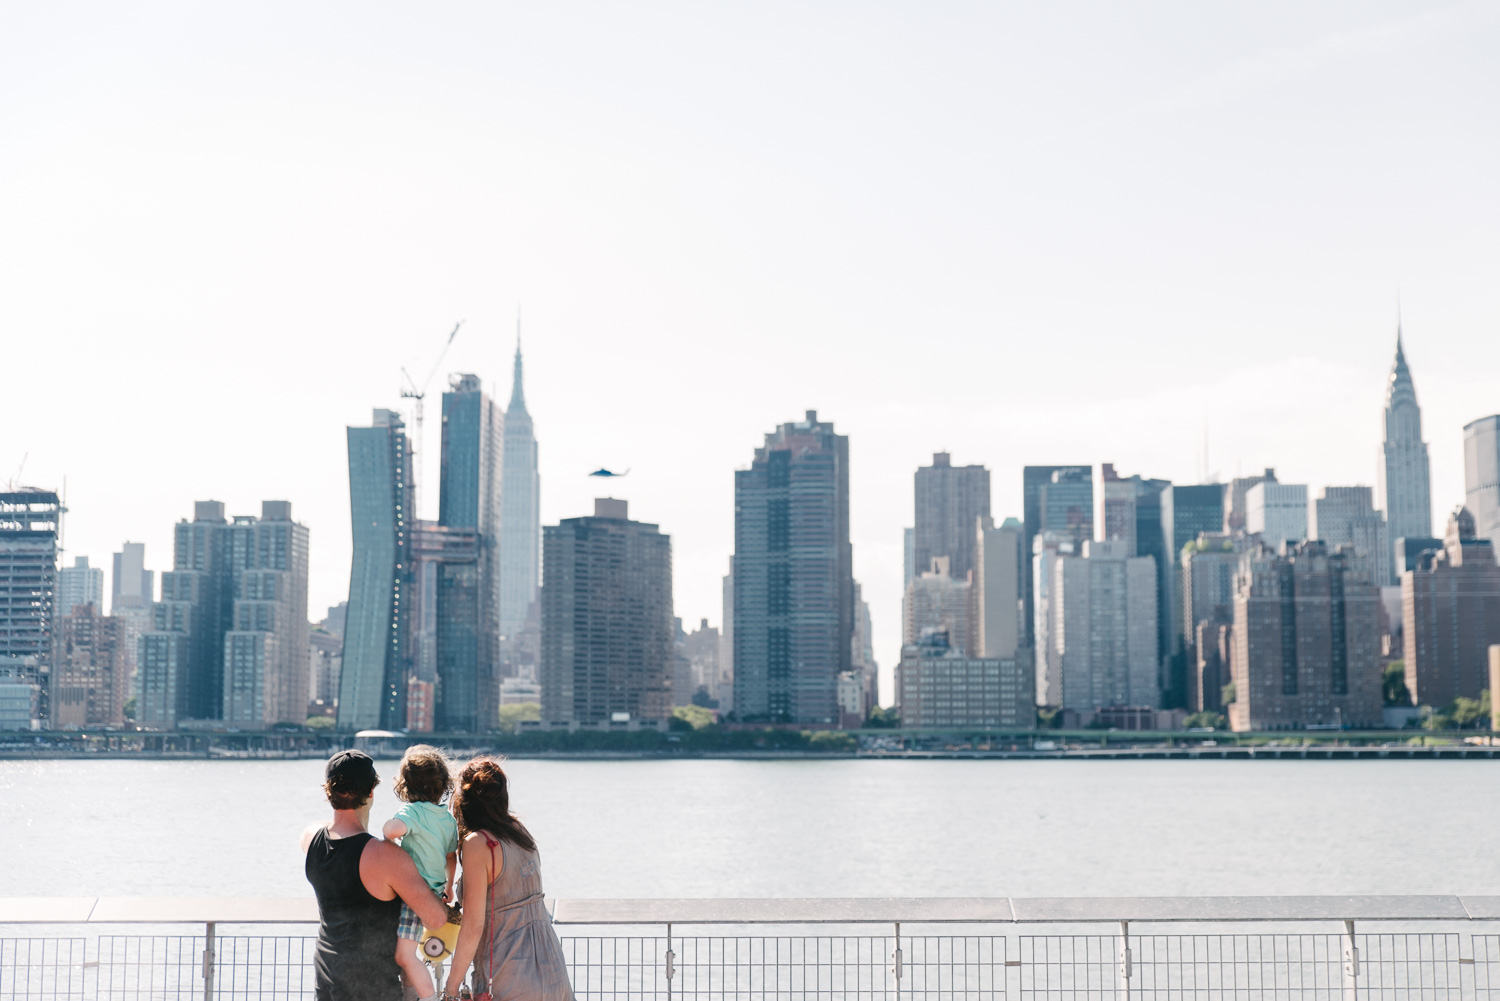 Francesca Russell Photography | Astoria, Queens Family Photographer | Family portrait in front of the skyline